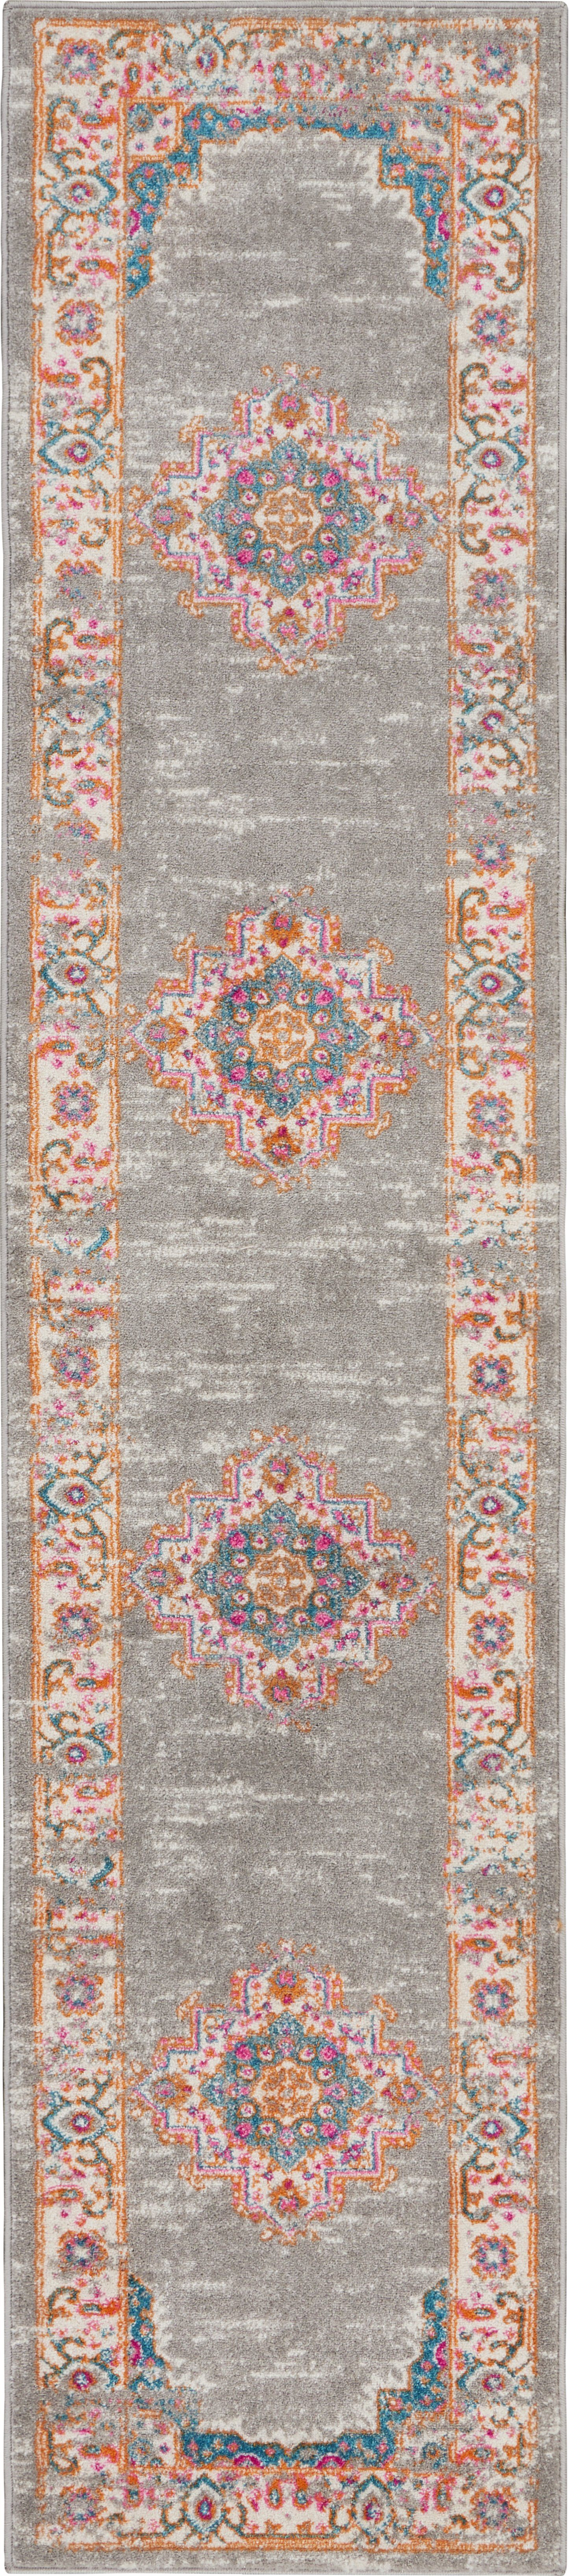 "Passion 10' Runner Grey Vintage Area Rug Rugs Nourison 2'2"" x 10'"